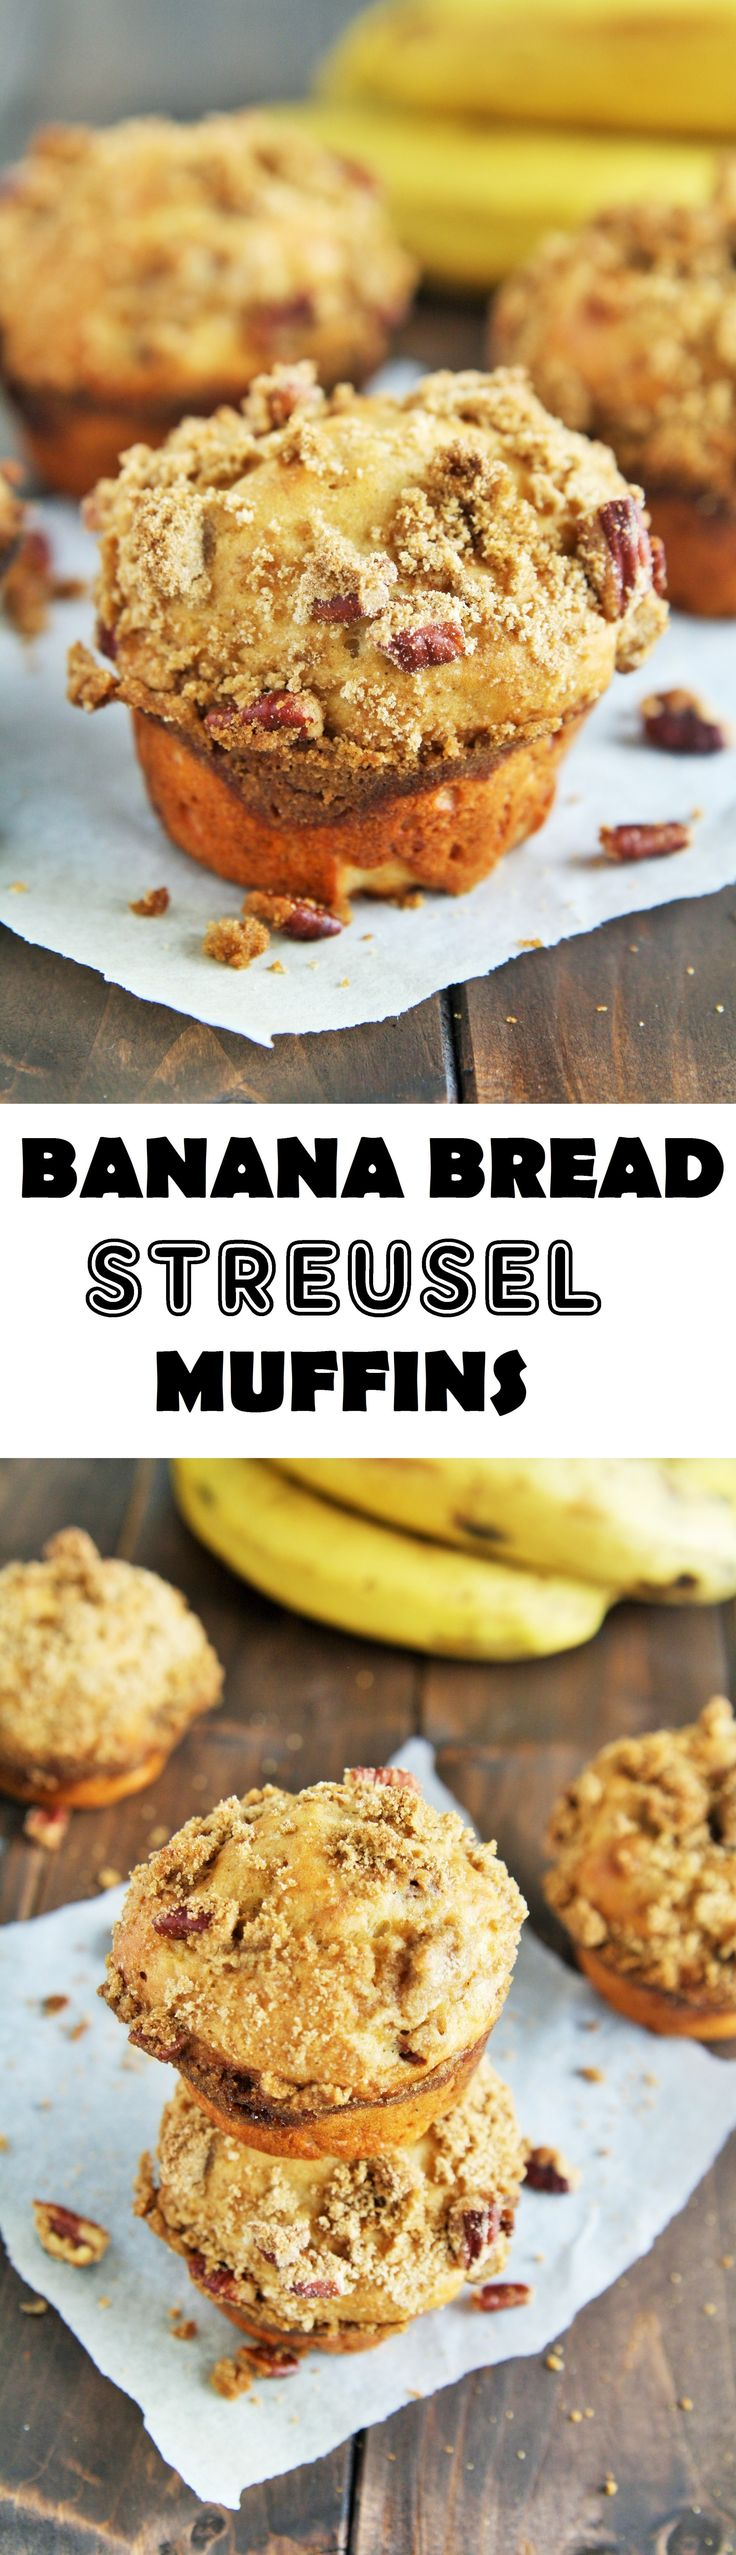 Jun 17, 2020 – These muffins are a combination of homemade banana bread and coffee cake with moist, tender crumbs, and t…